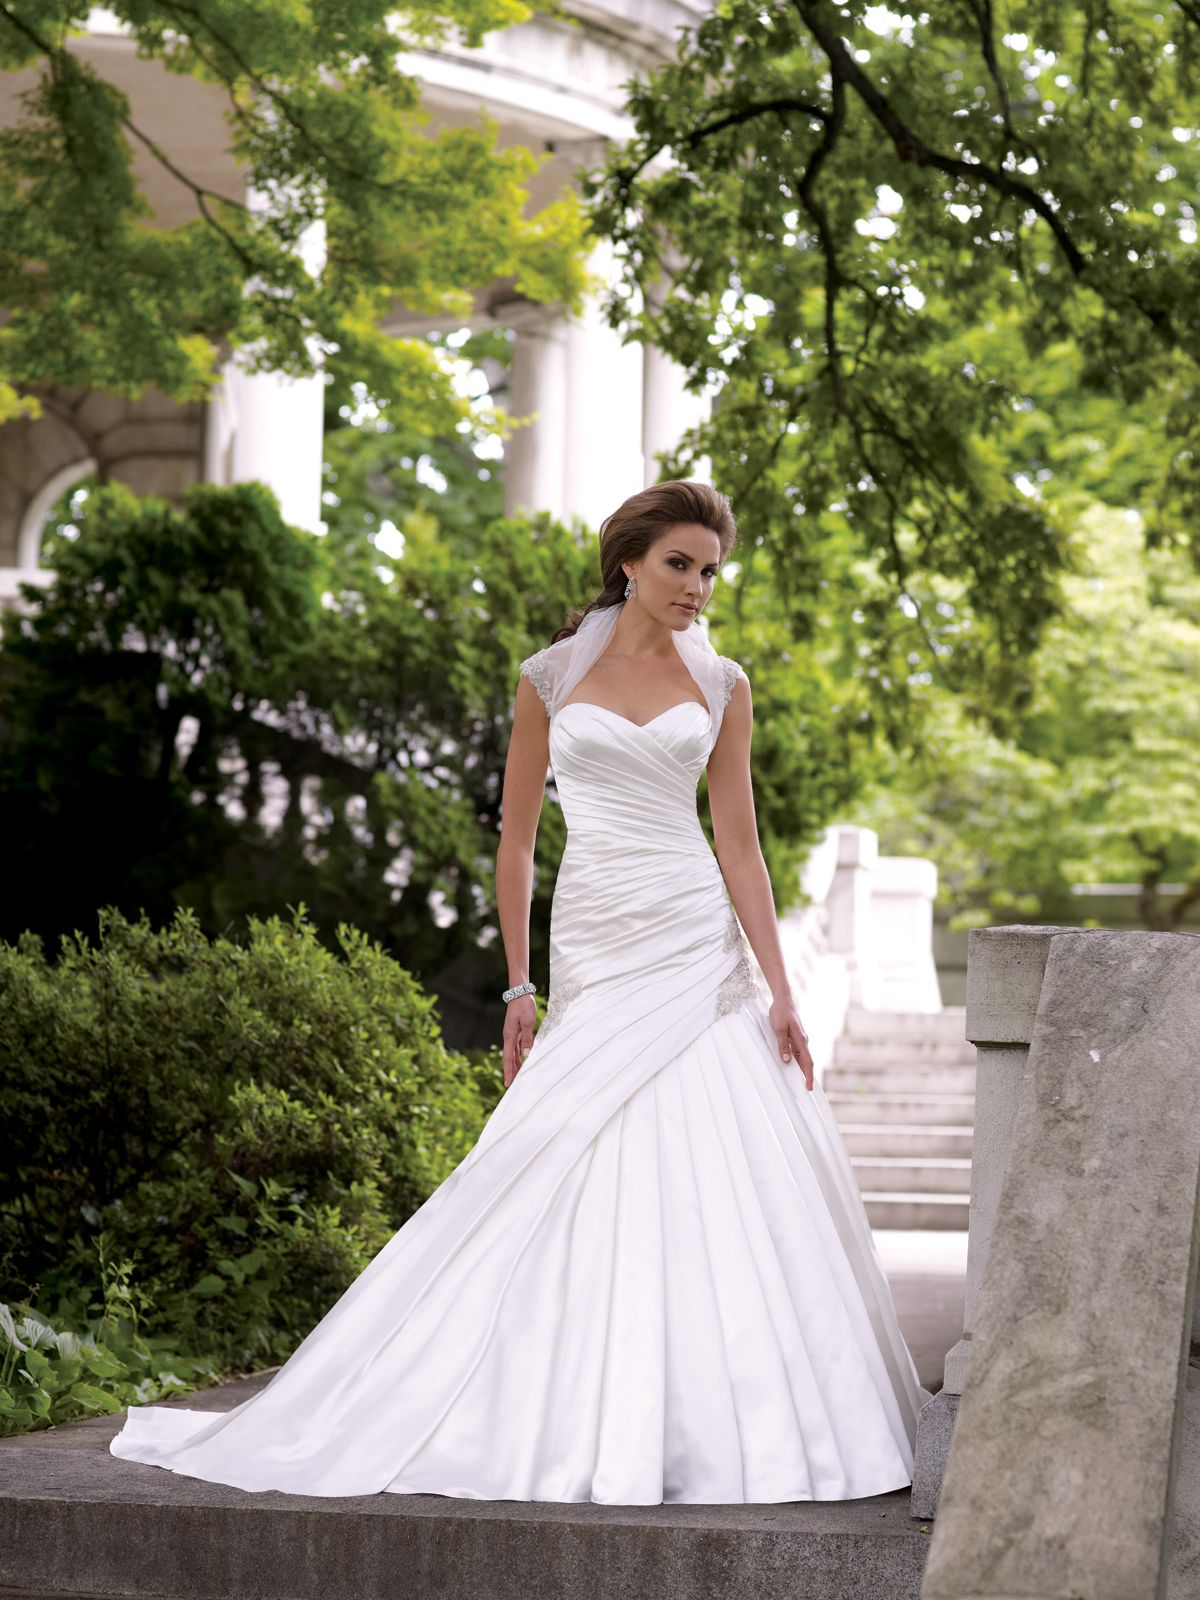 Looking For A Wedding Dress With Bolero Jacket Your Winter